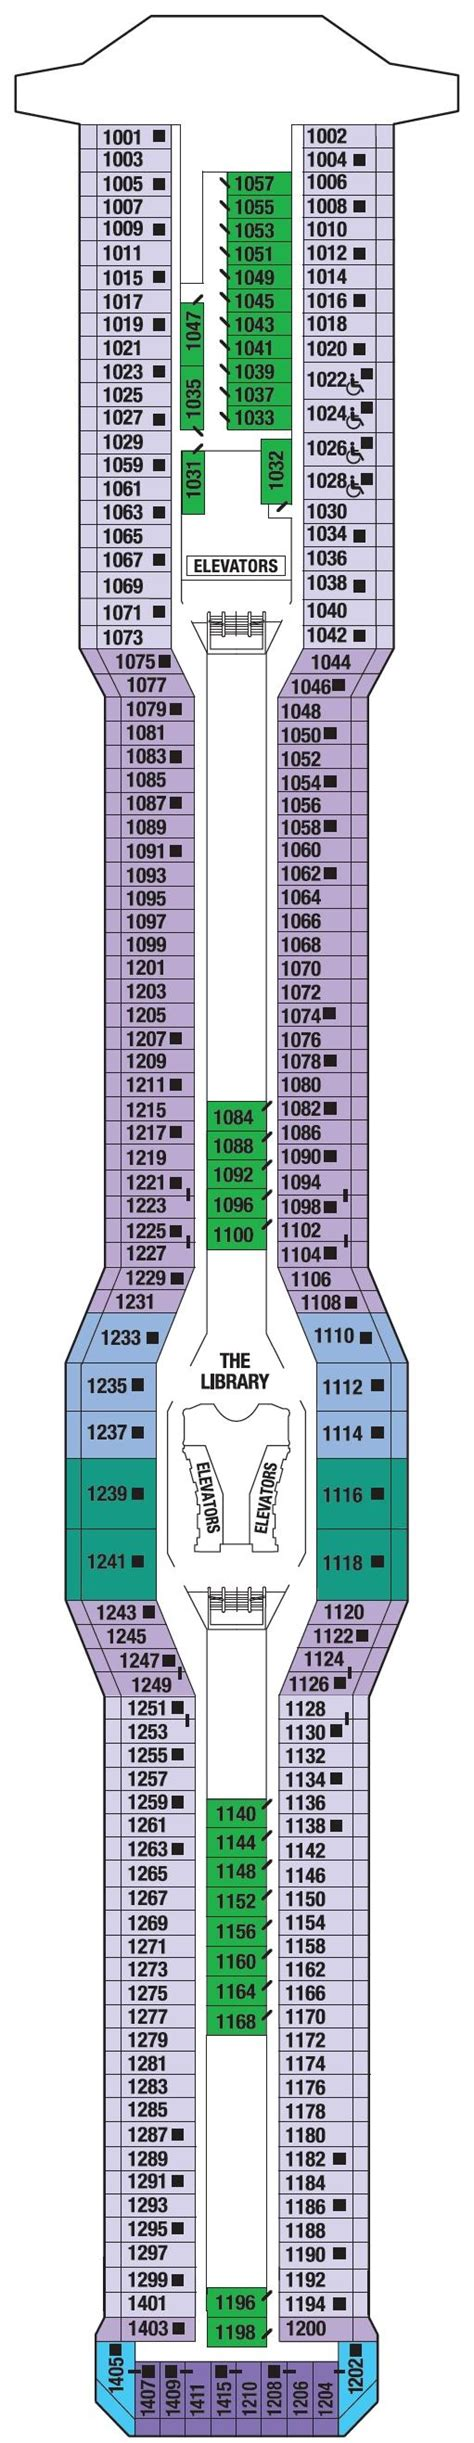 deck plans celebrity silhouette the luxury cruise company